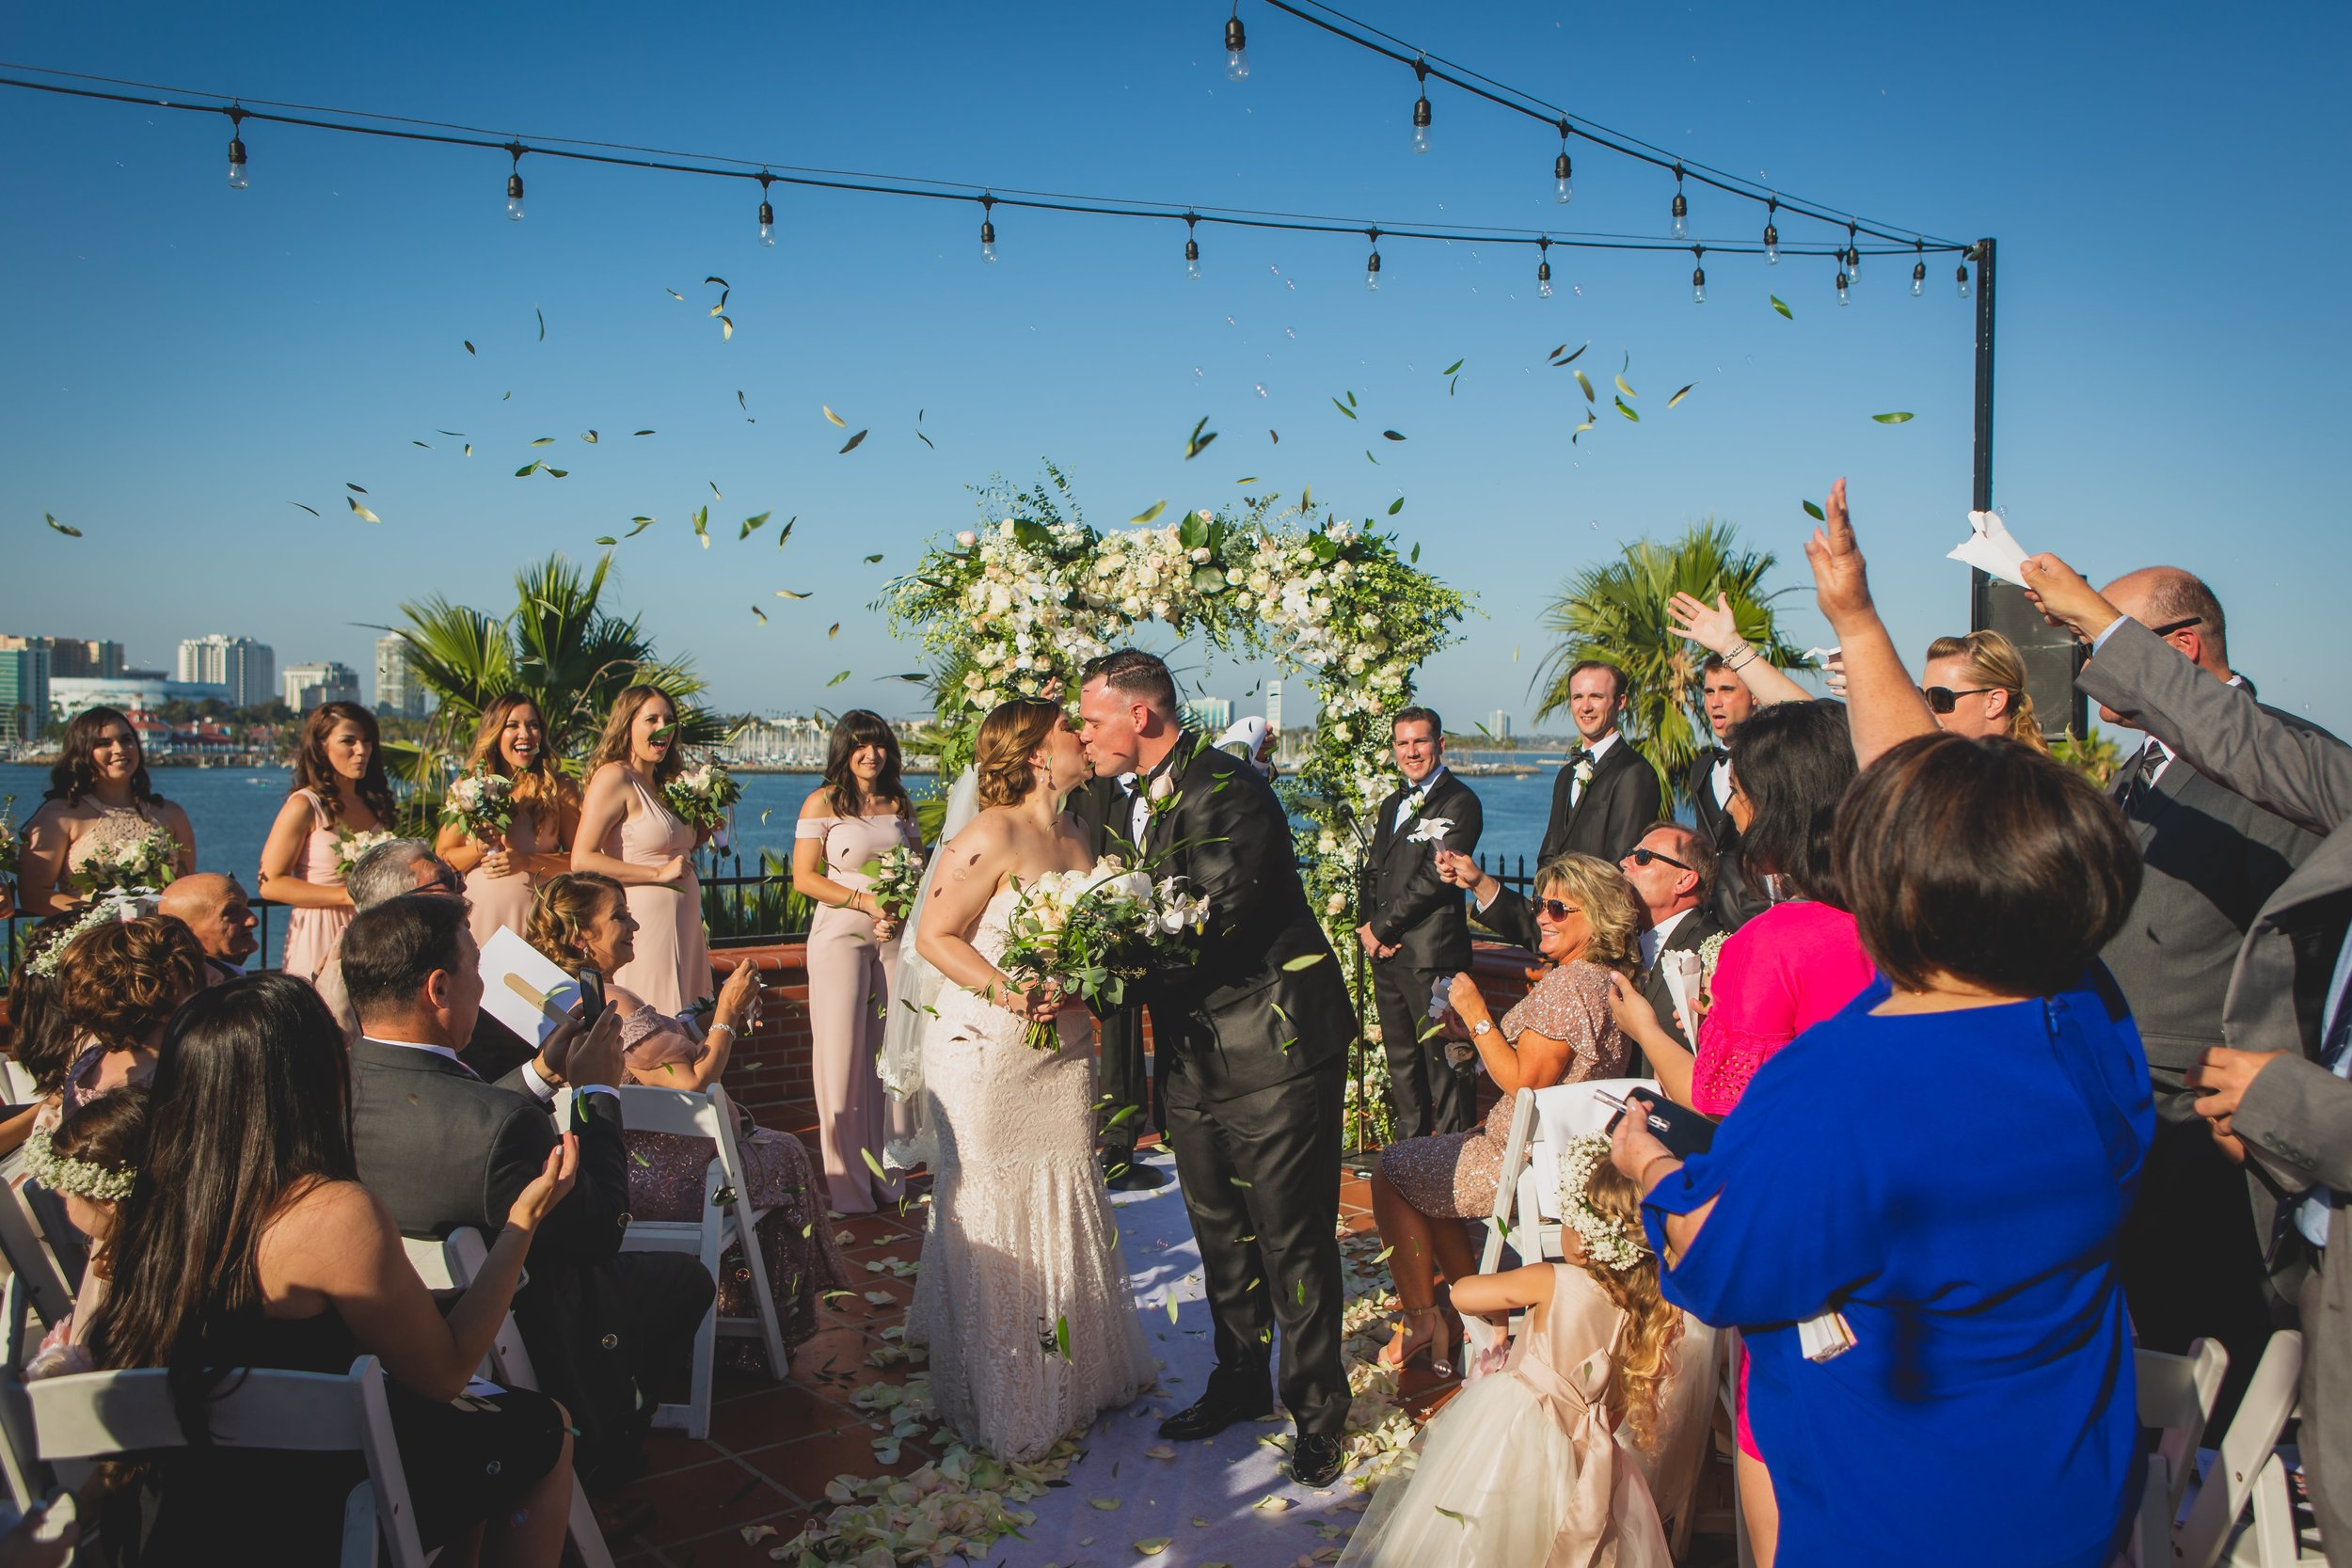 Last Minute Checklist: Things to Know Before Your Outdoor Wedding - A beachfront outdoor wedding ceremony.